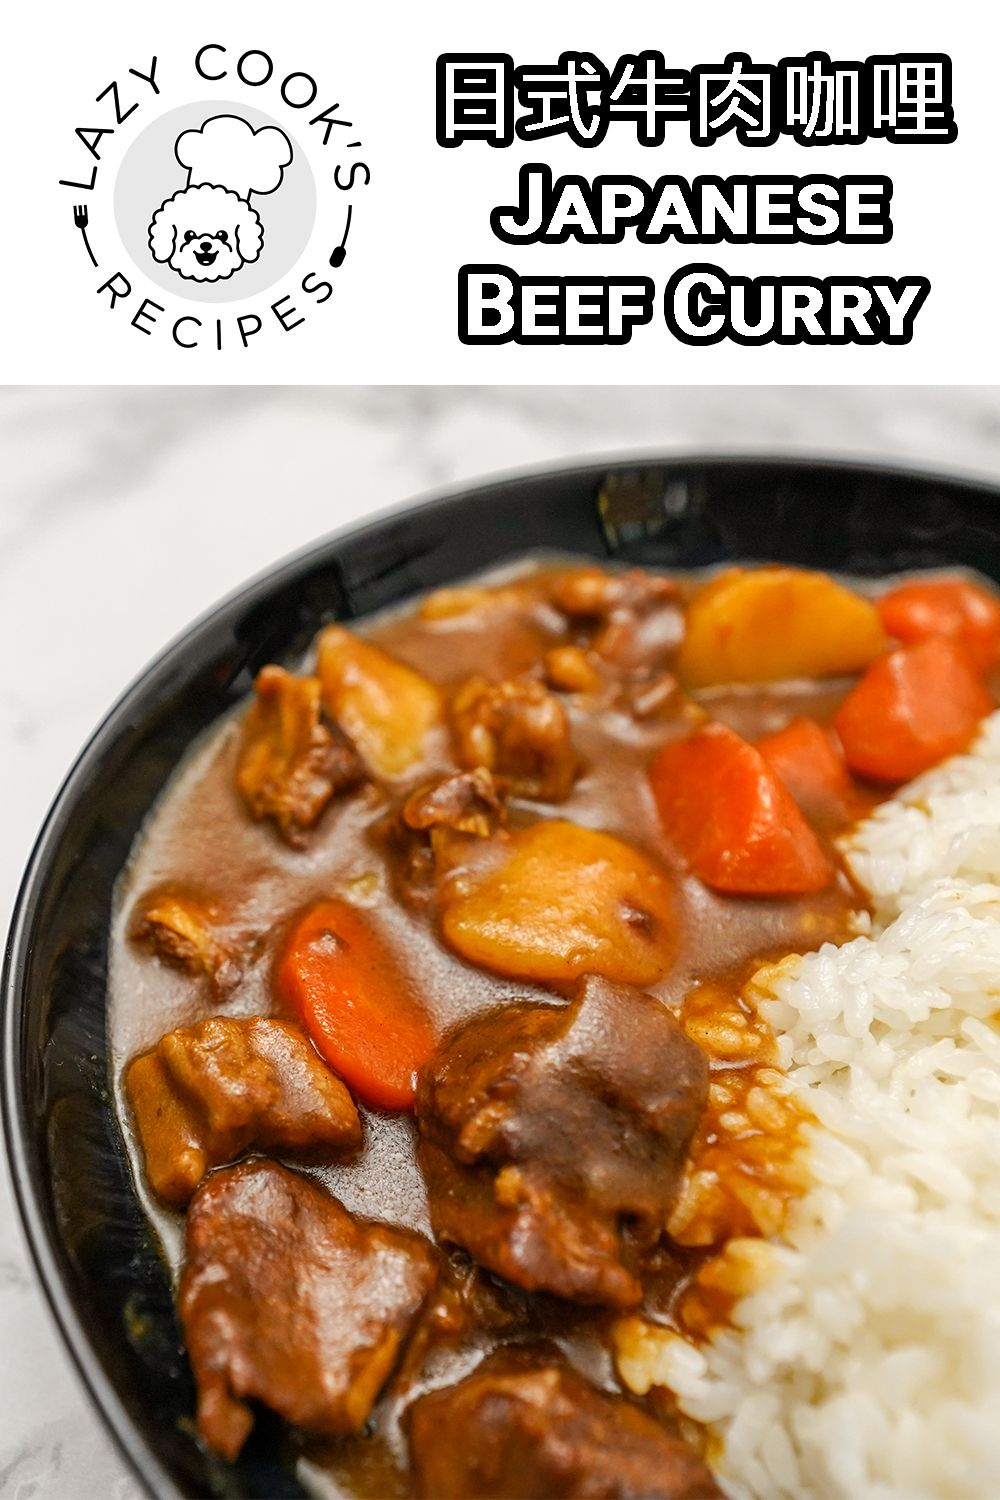 Japanese Beef Curry In 2020 Beef Curry Beef Curry Recipe Curry